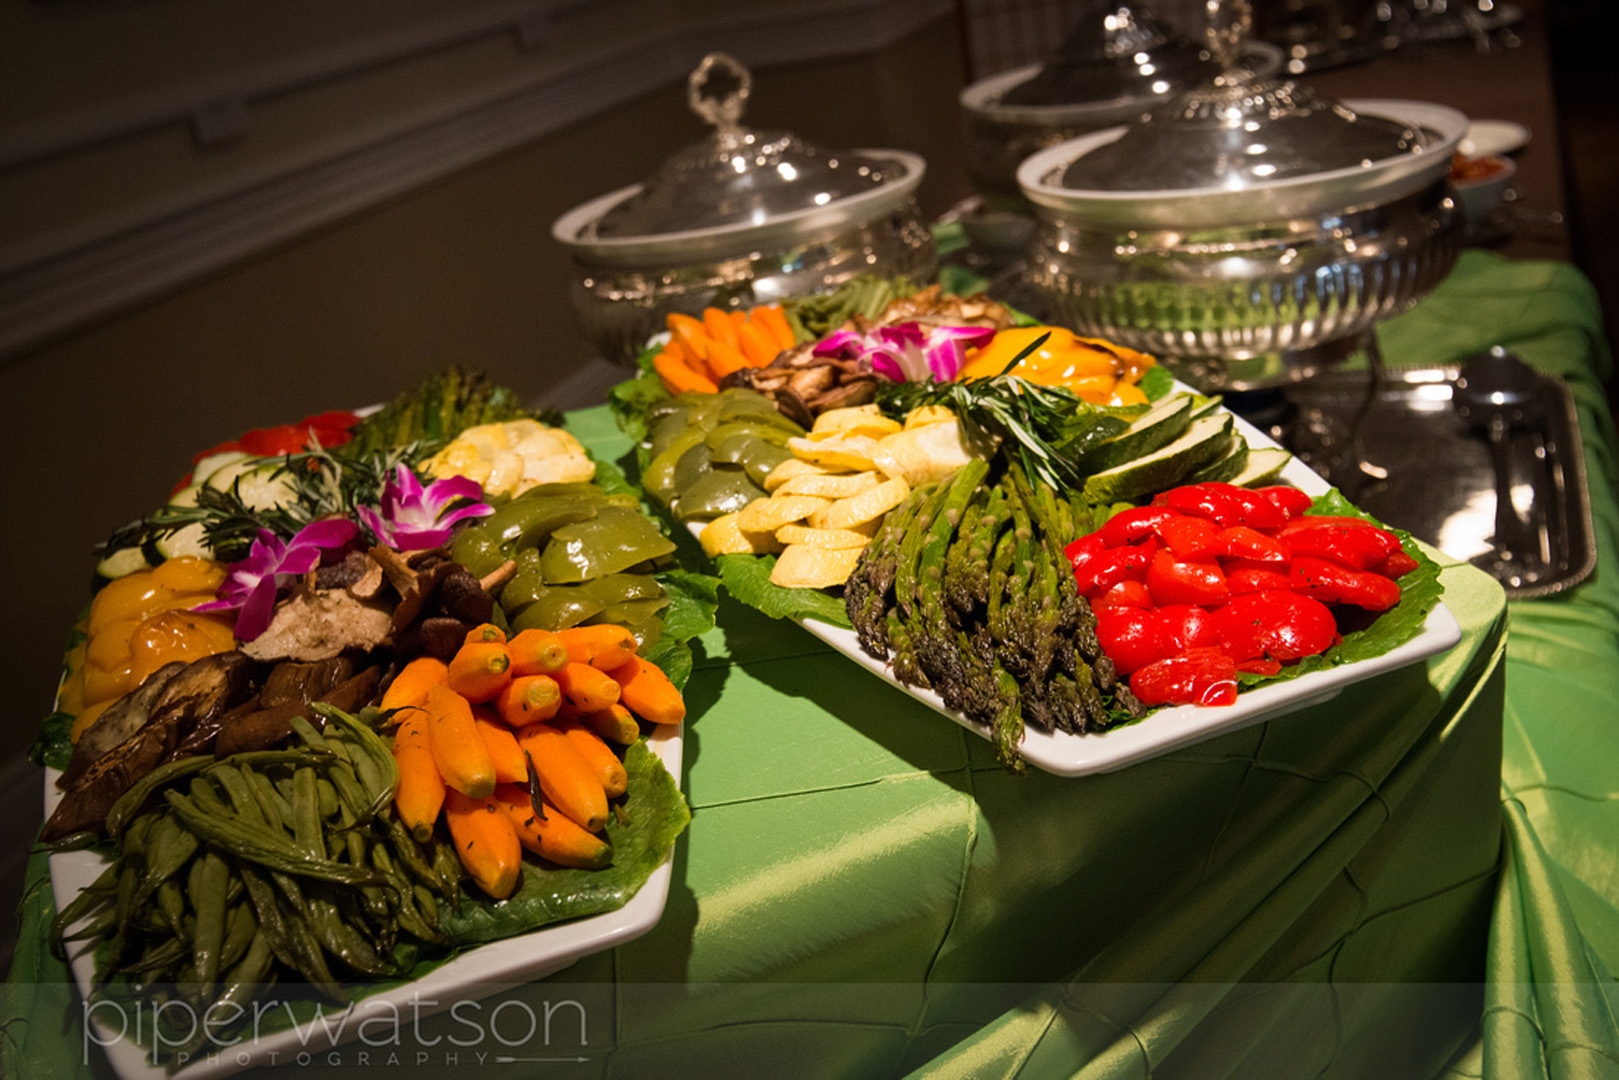 03_Catering